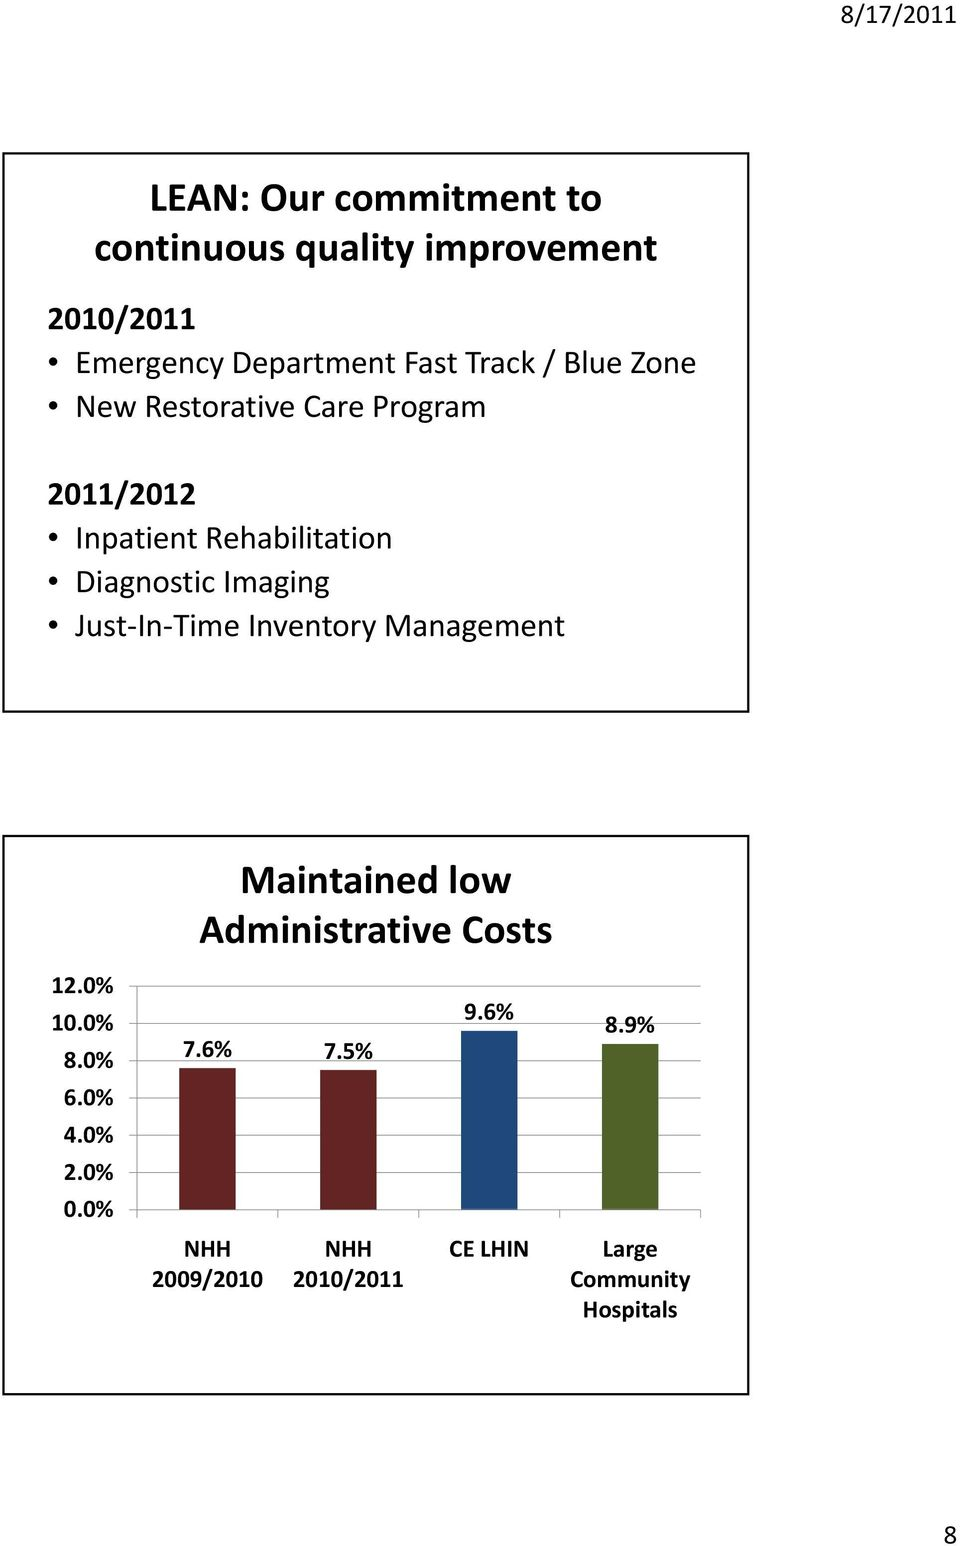 Just In Time Inventory Management 12.0% 10.0% 0% 8.0% 6.0% 4.0% 2.0% 00% 0.